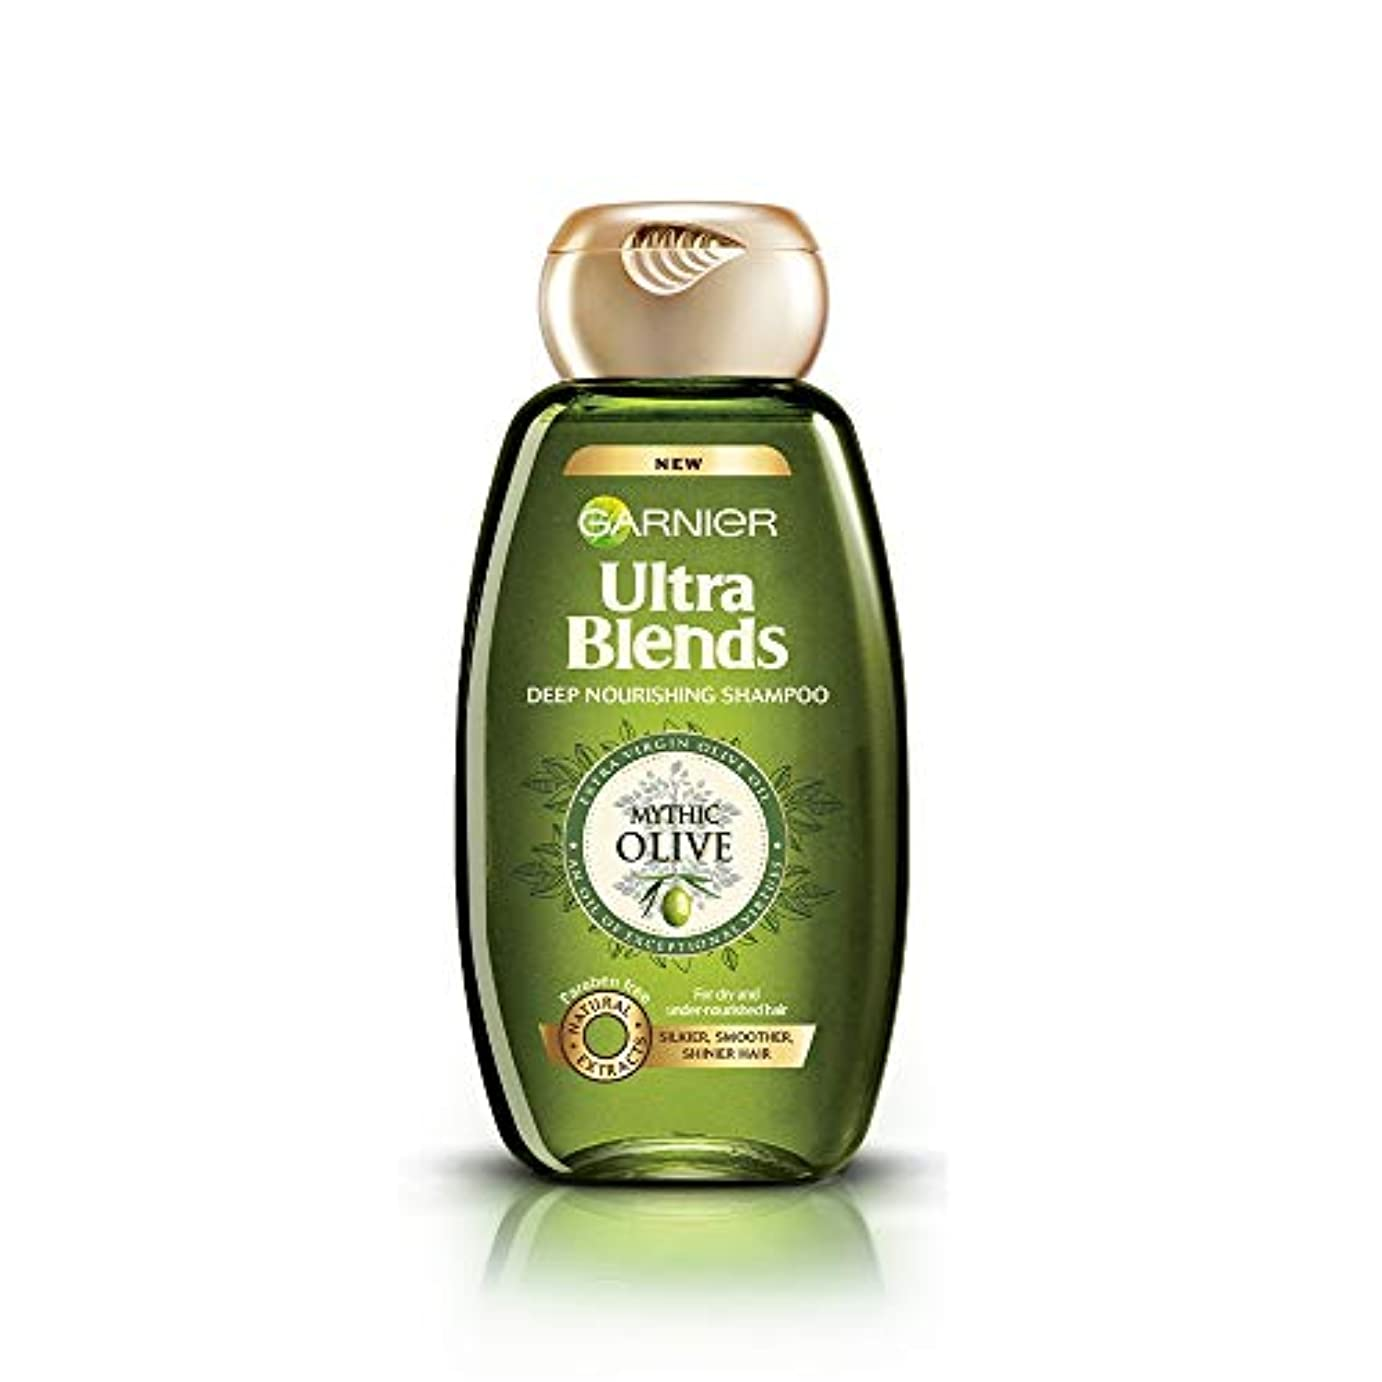 間欠圧縮不規則性Garnier Ultra Blends Shampoo, Mythic Olive, 360ml